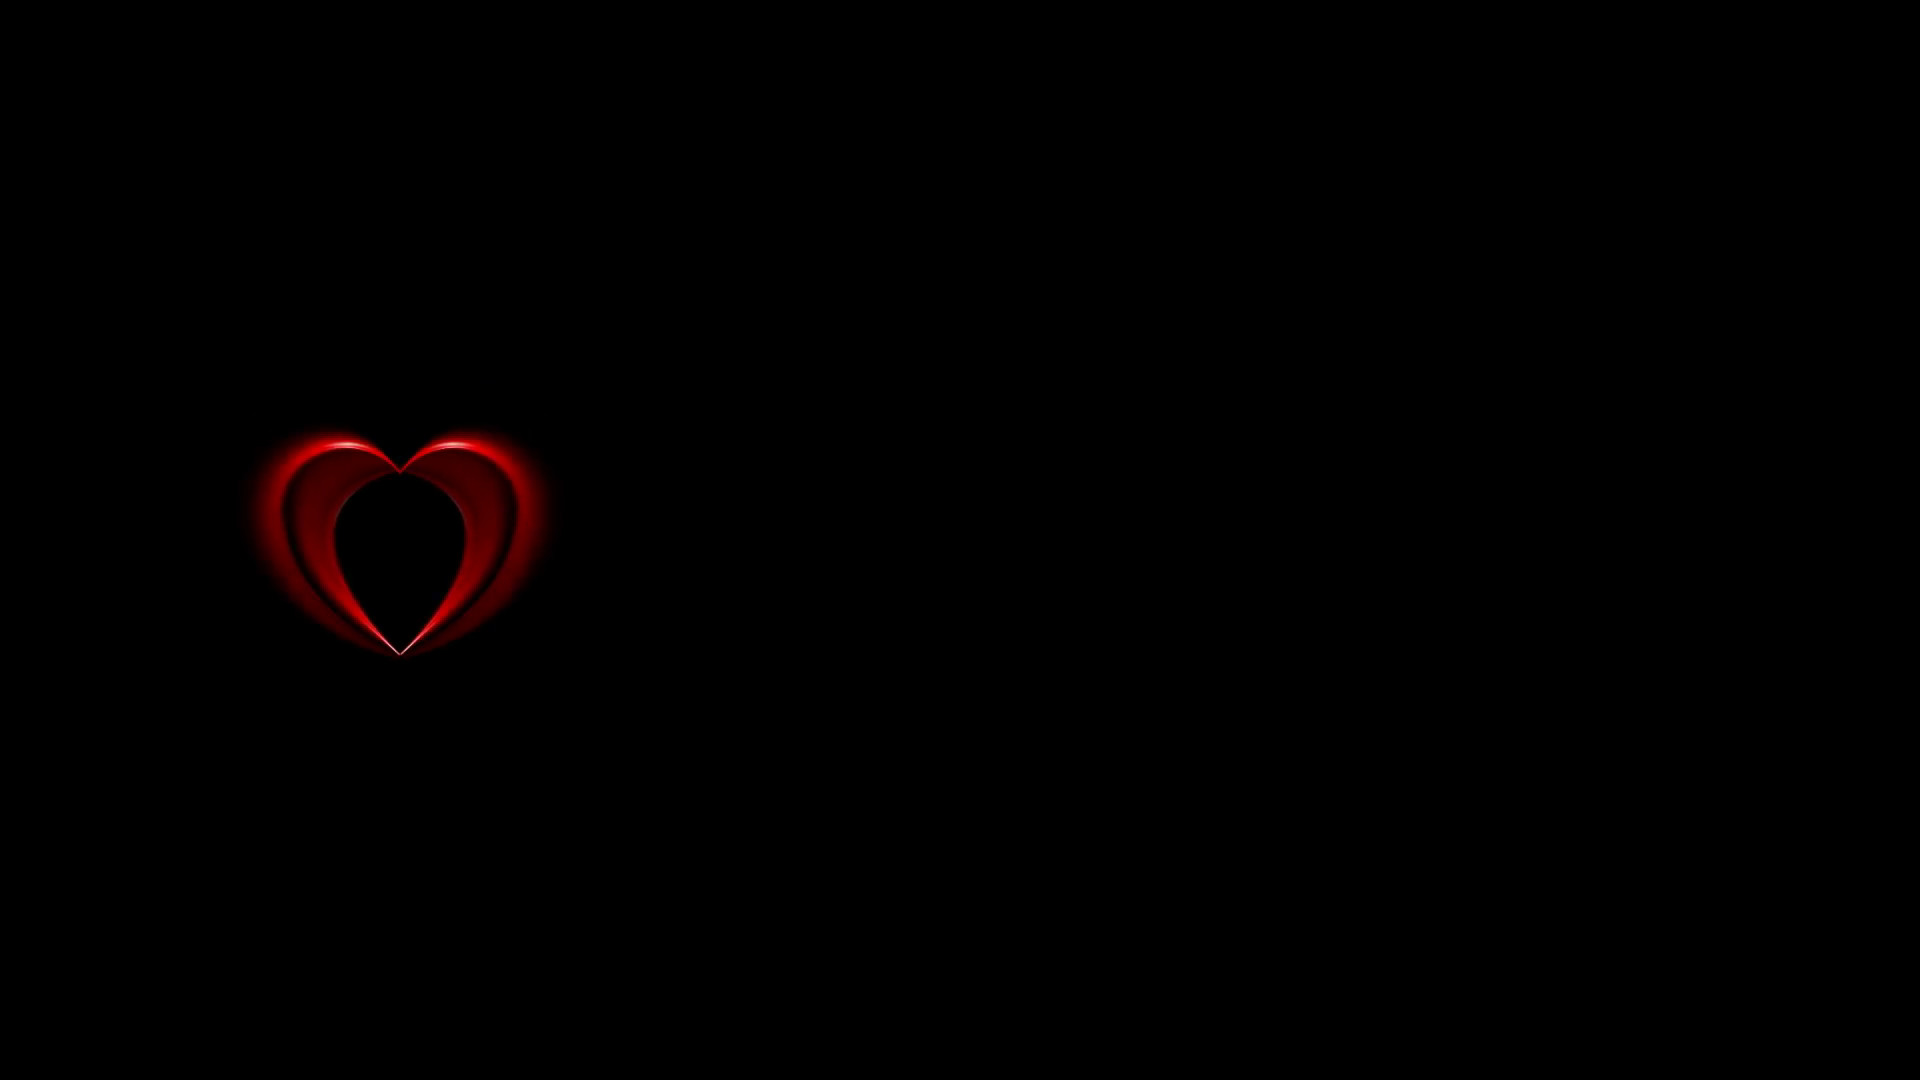 Red And Black Heart Wallpaper 64 Images